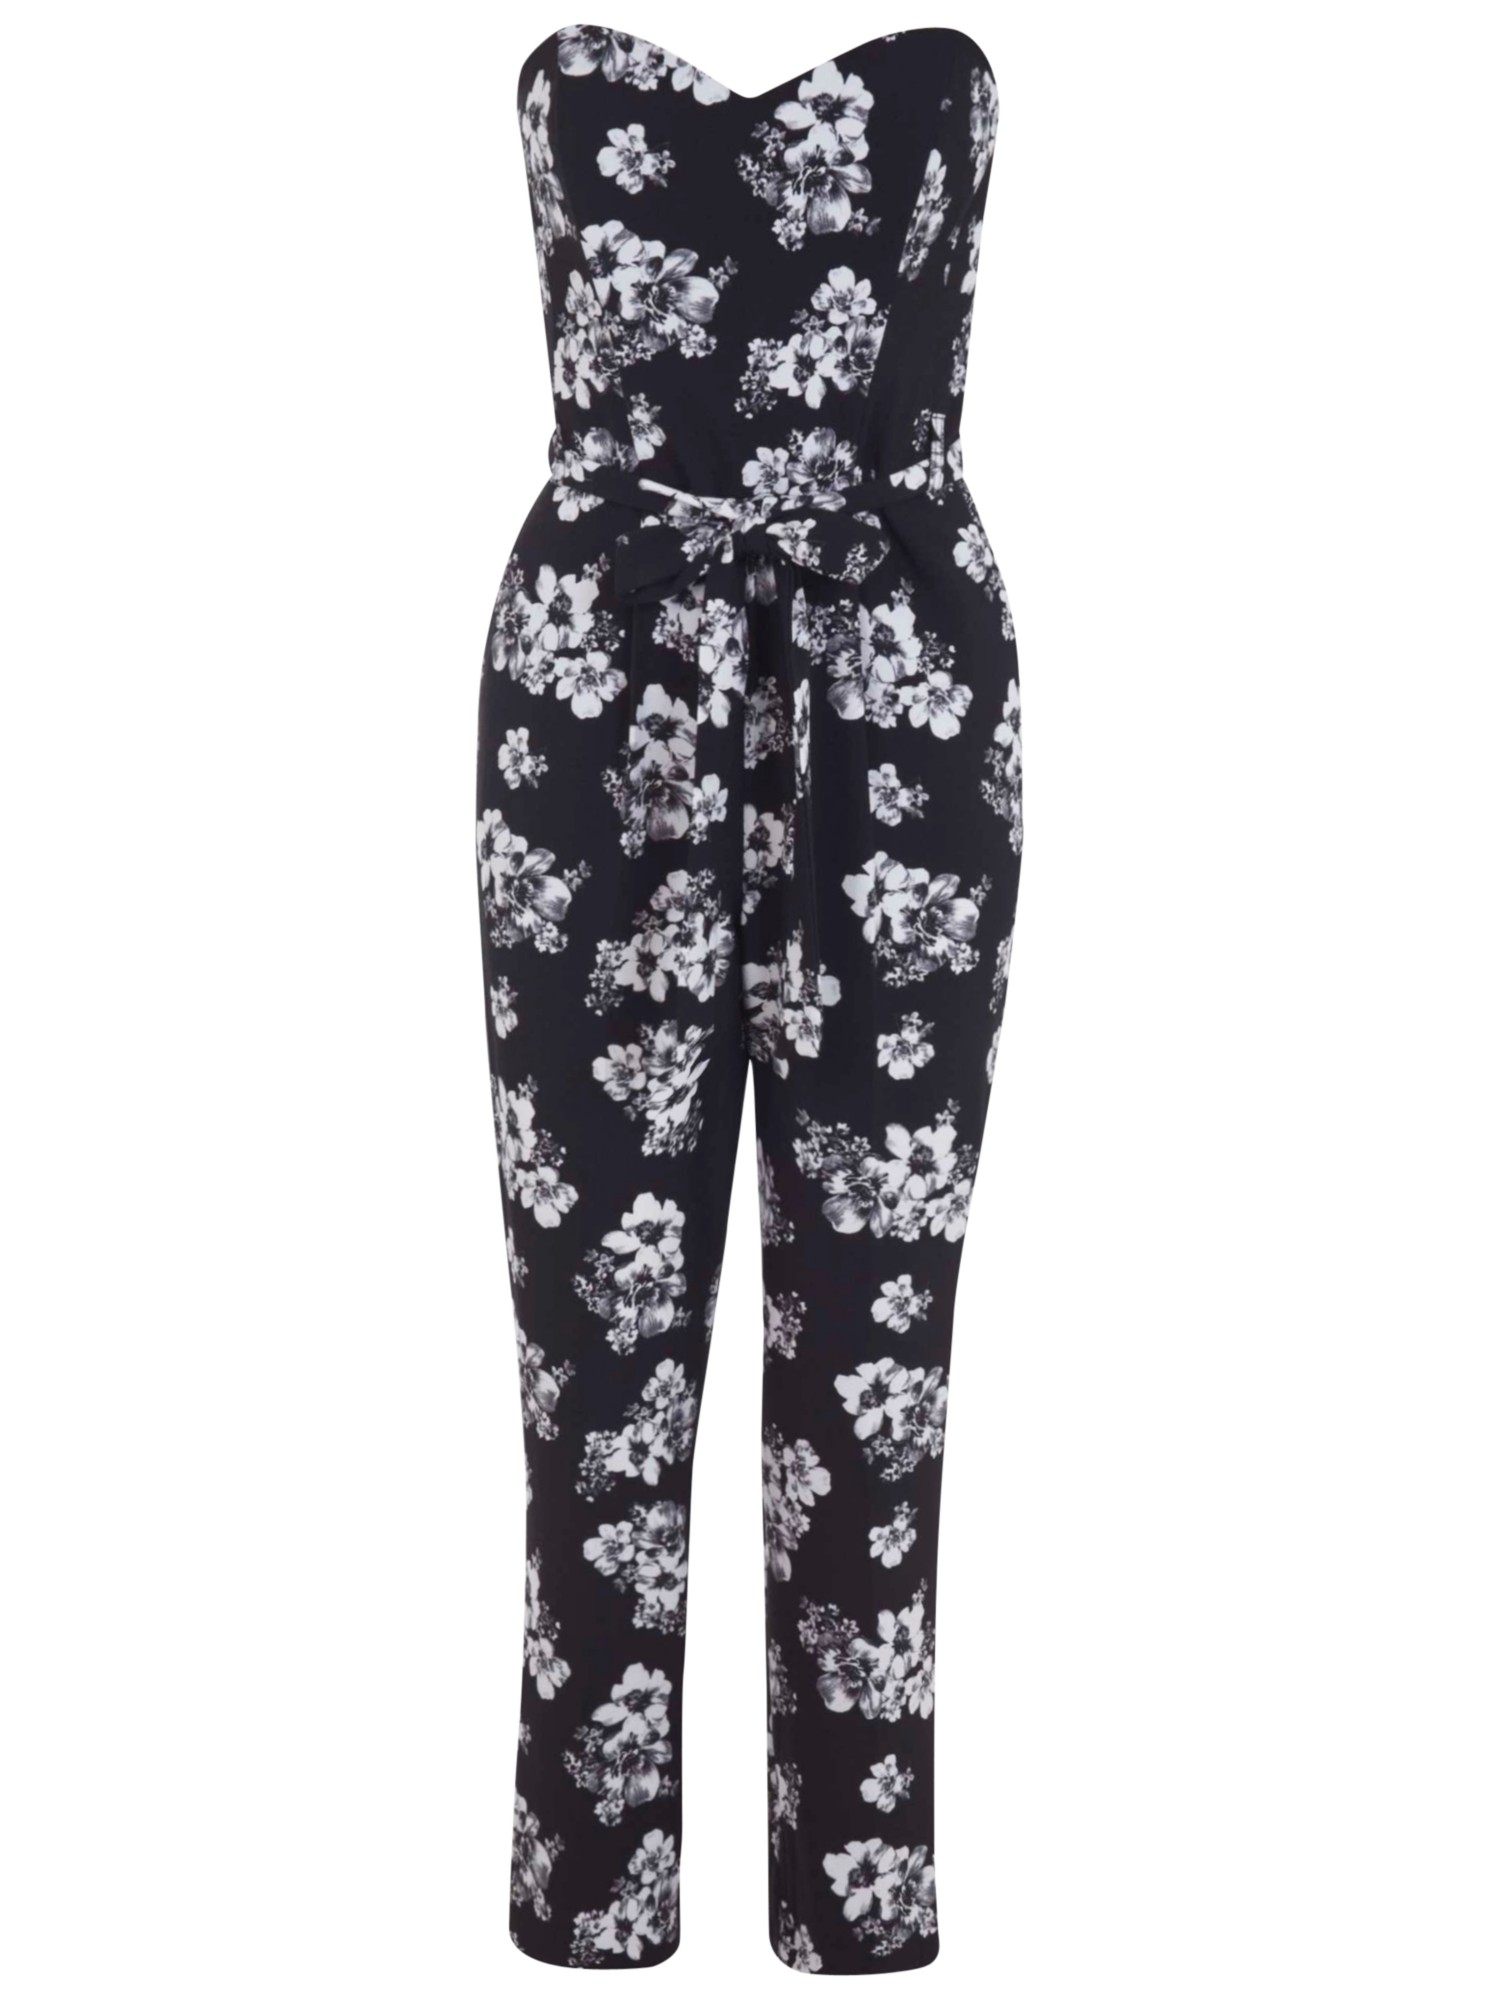 437b9d0b909 Miss Selfridge Bandeau Floral Print Jumpsuit in Black - Lyst